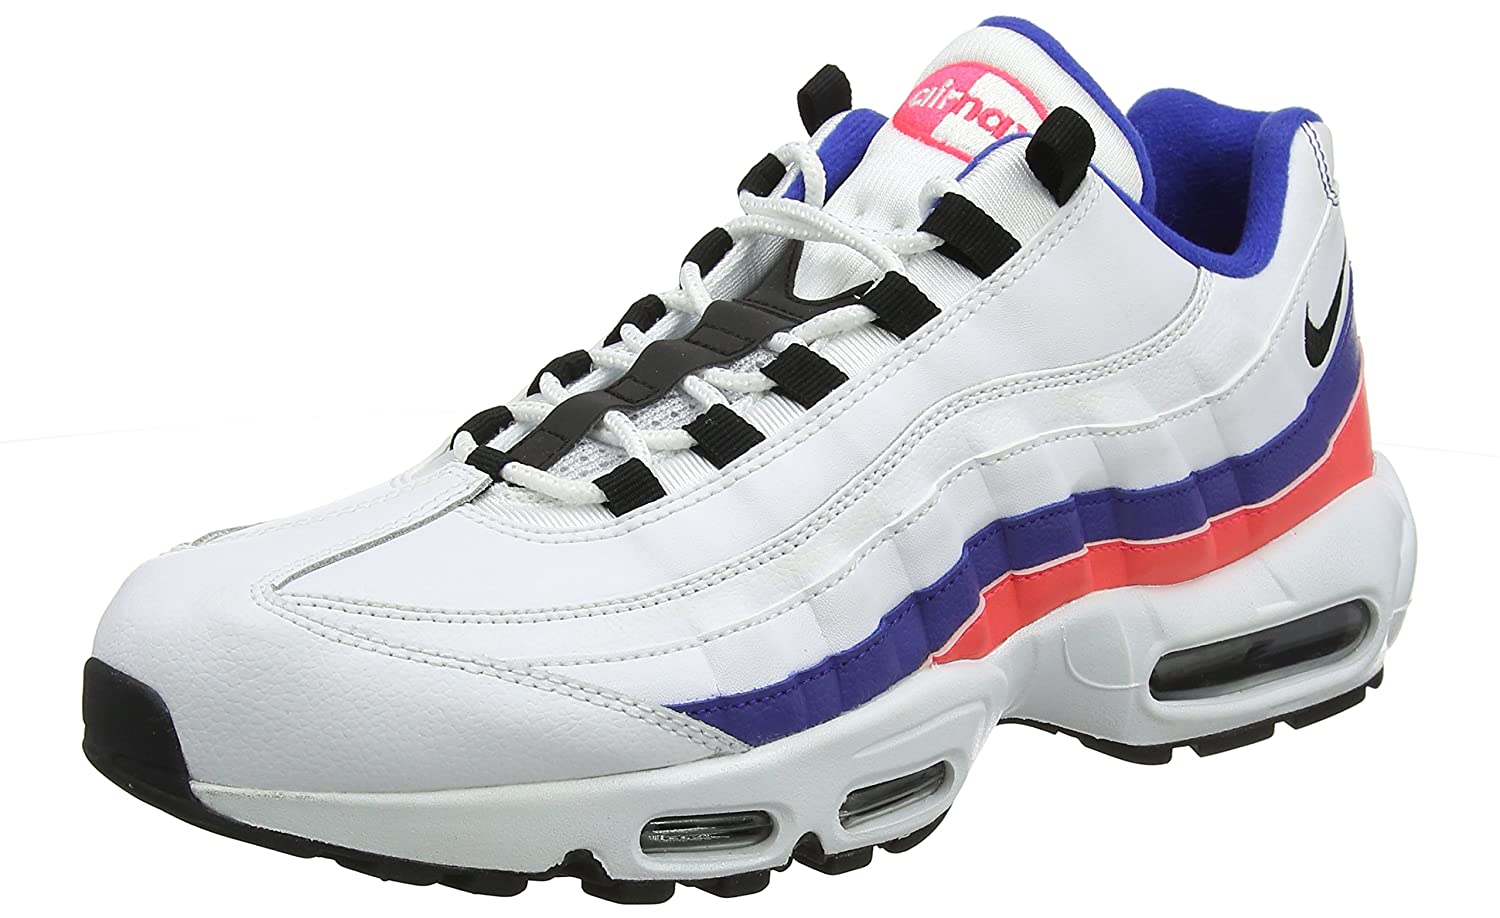 on sale 35794 1a29f Amazon.com | NIKE Men's Air Max 95 White/Black/Solar Red ...